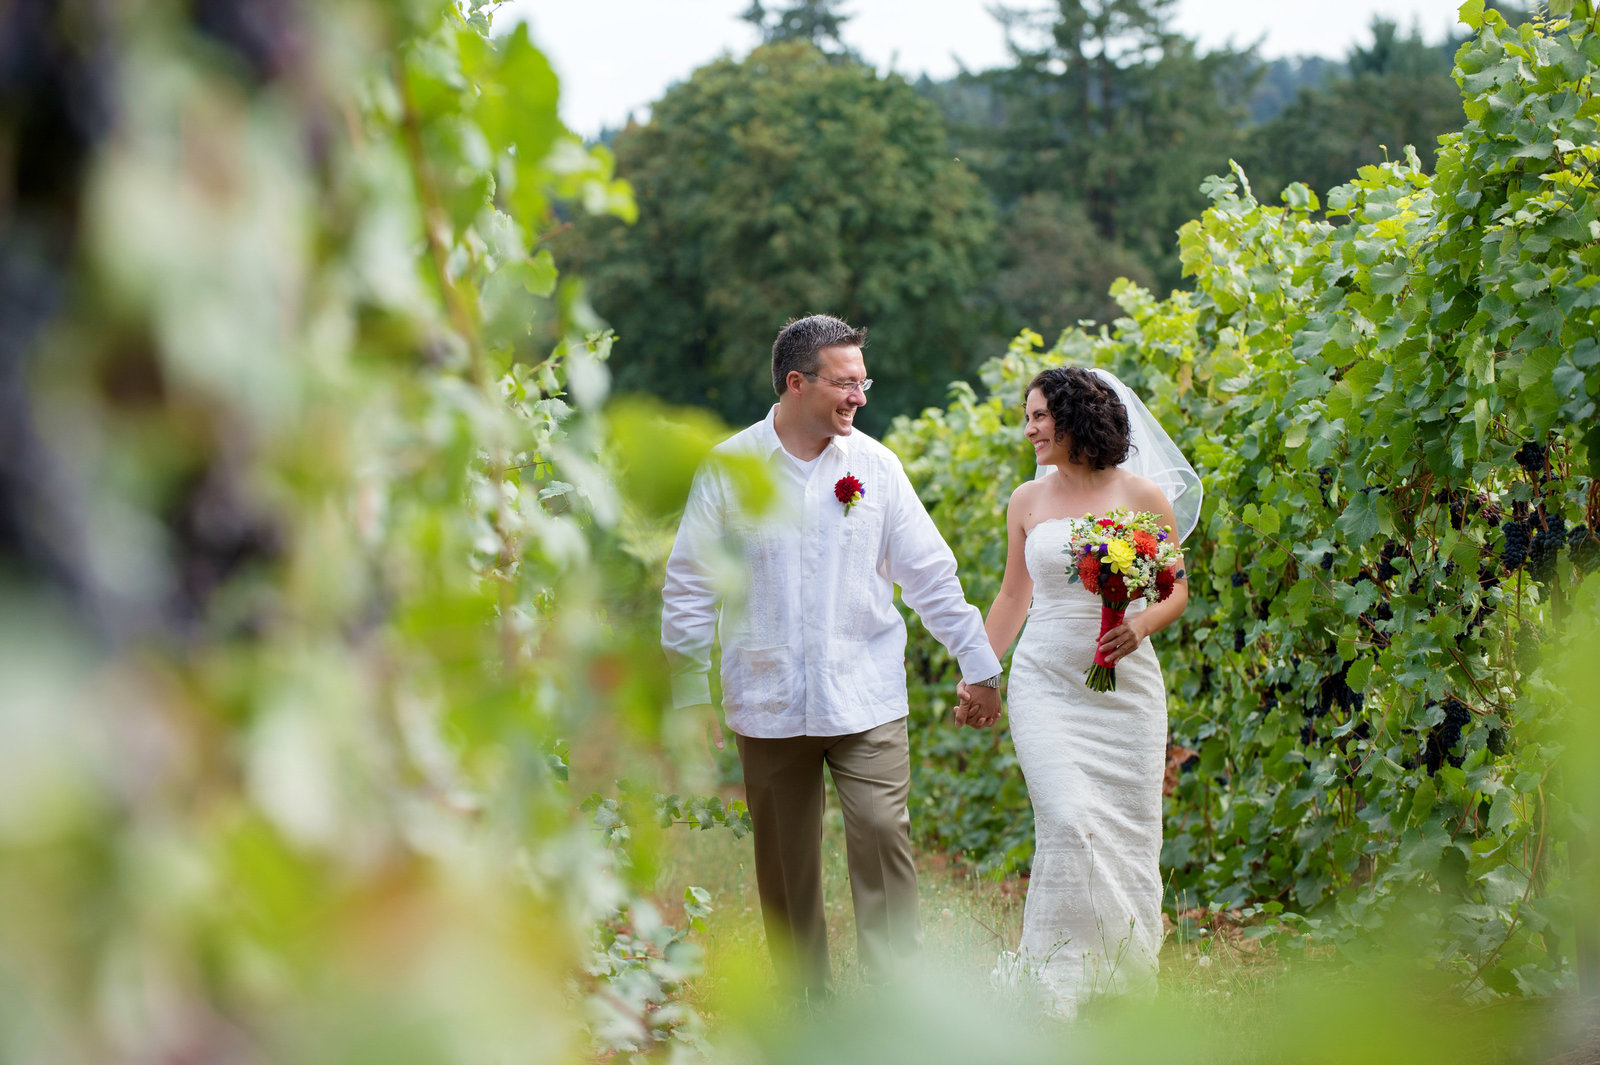 a newly married couple walk through a vineyard